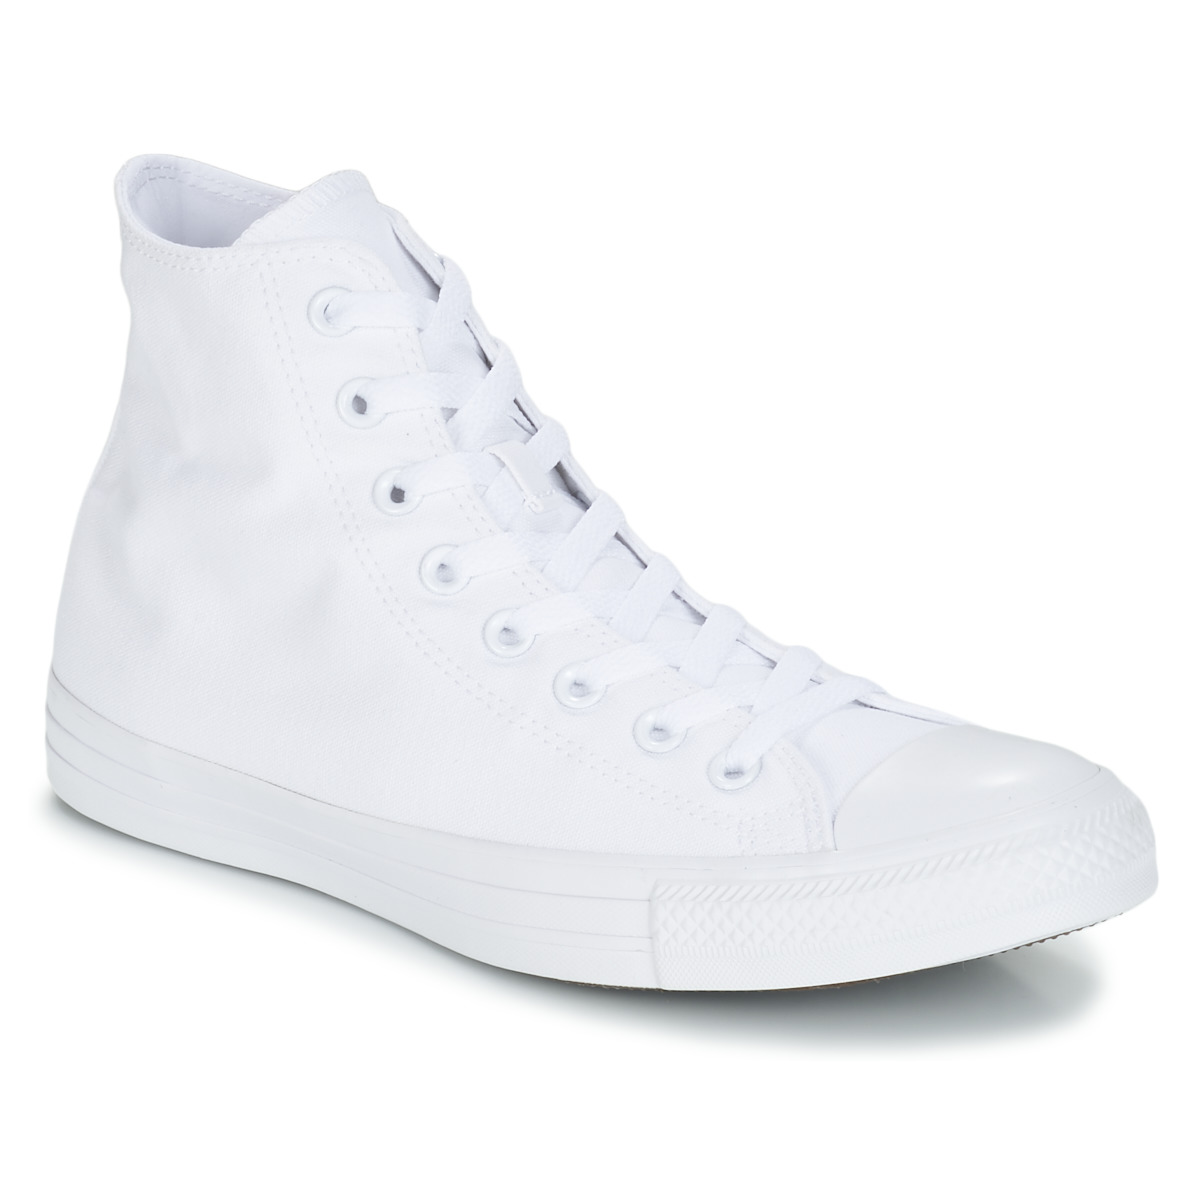 9b67df5b8bd Chaussures Baskets montantes Converse CHUCK TAYLOR ALL STAR SEASONAL HI  Blanc